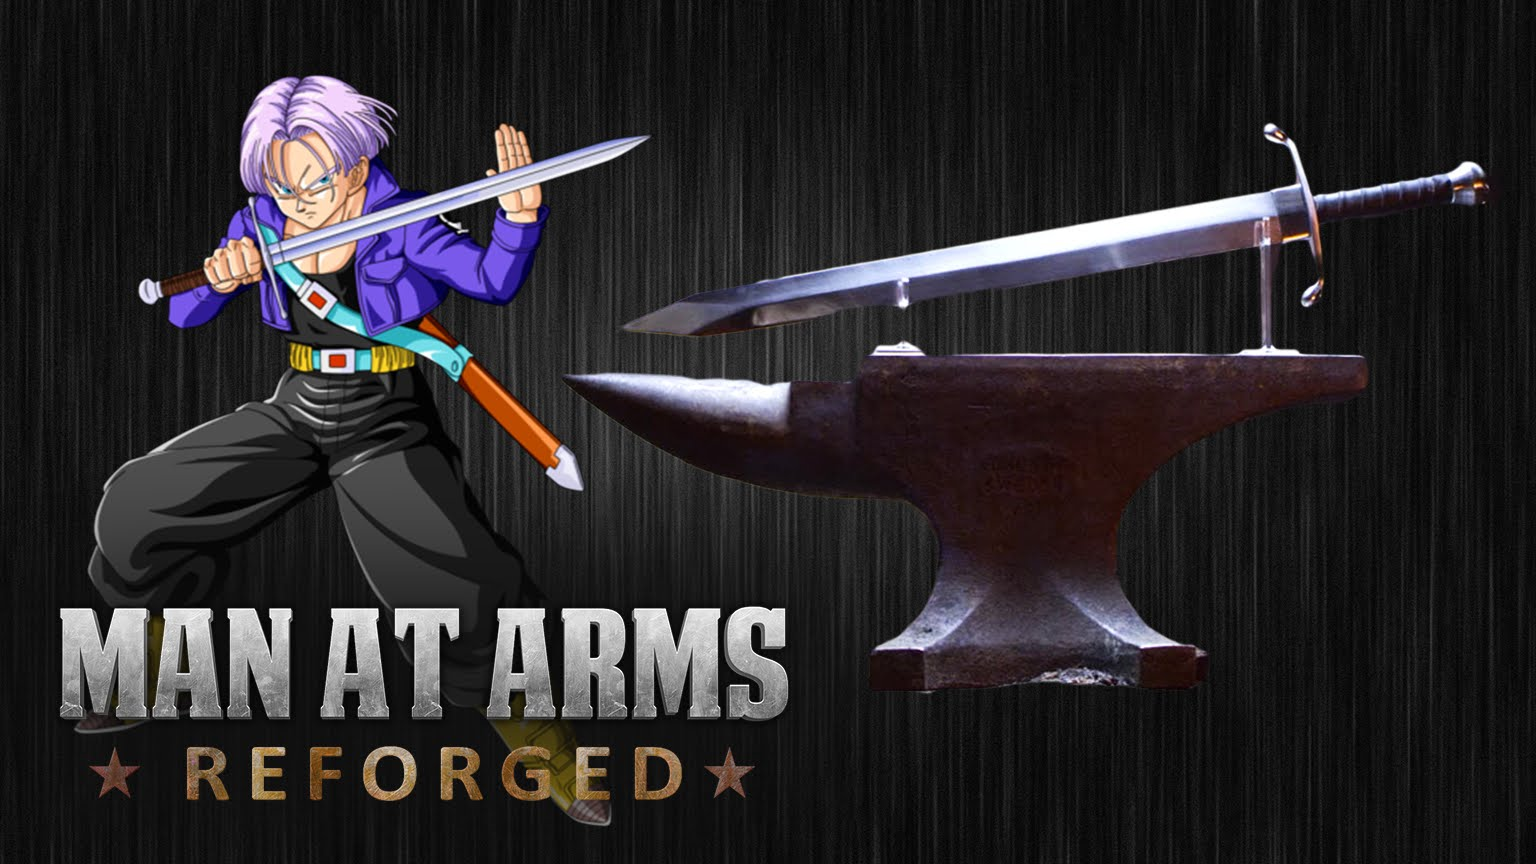 Espada de Trunks recriada na vida real